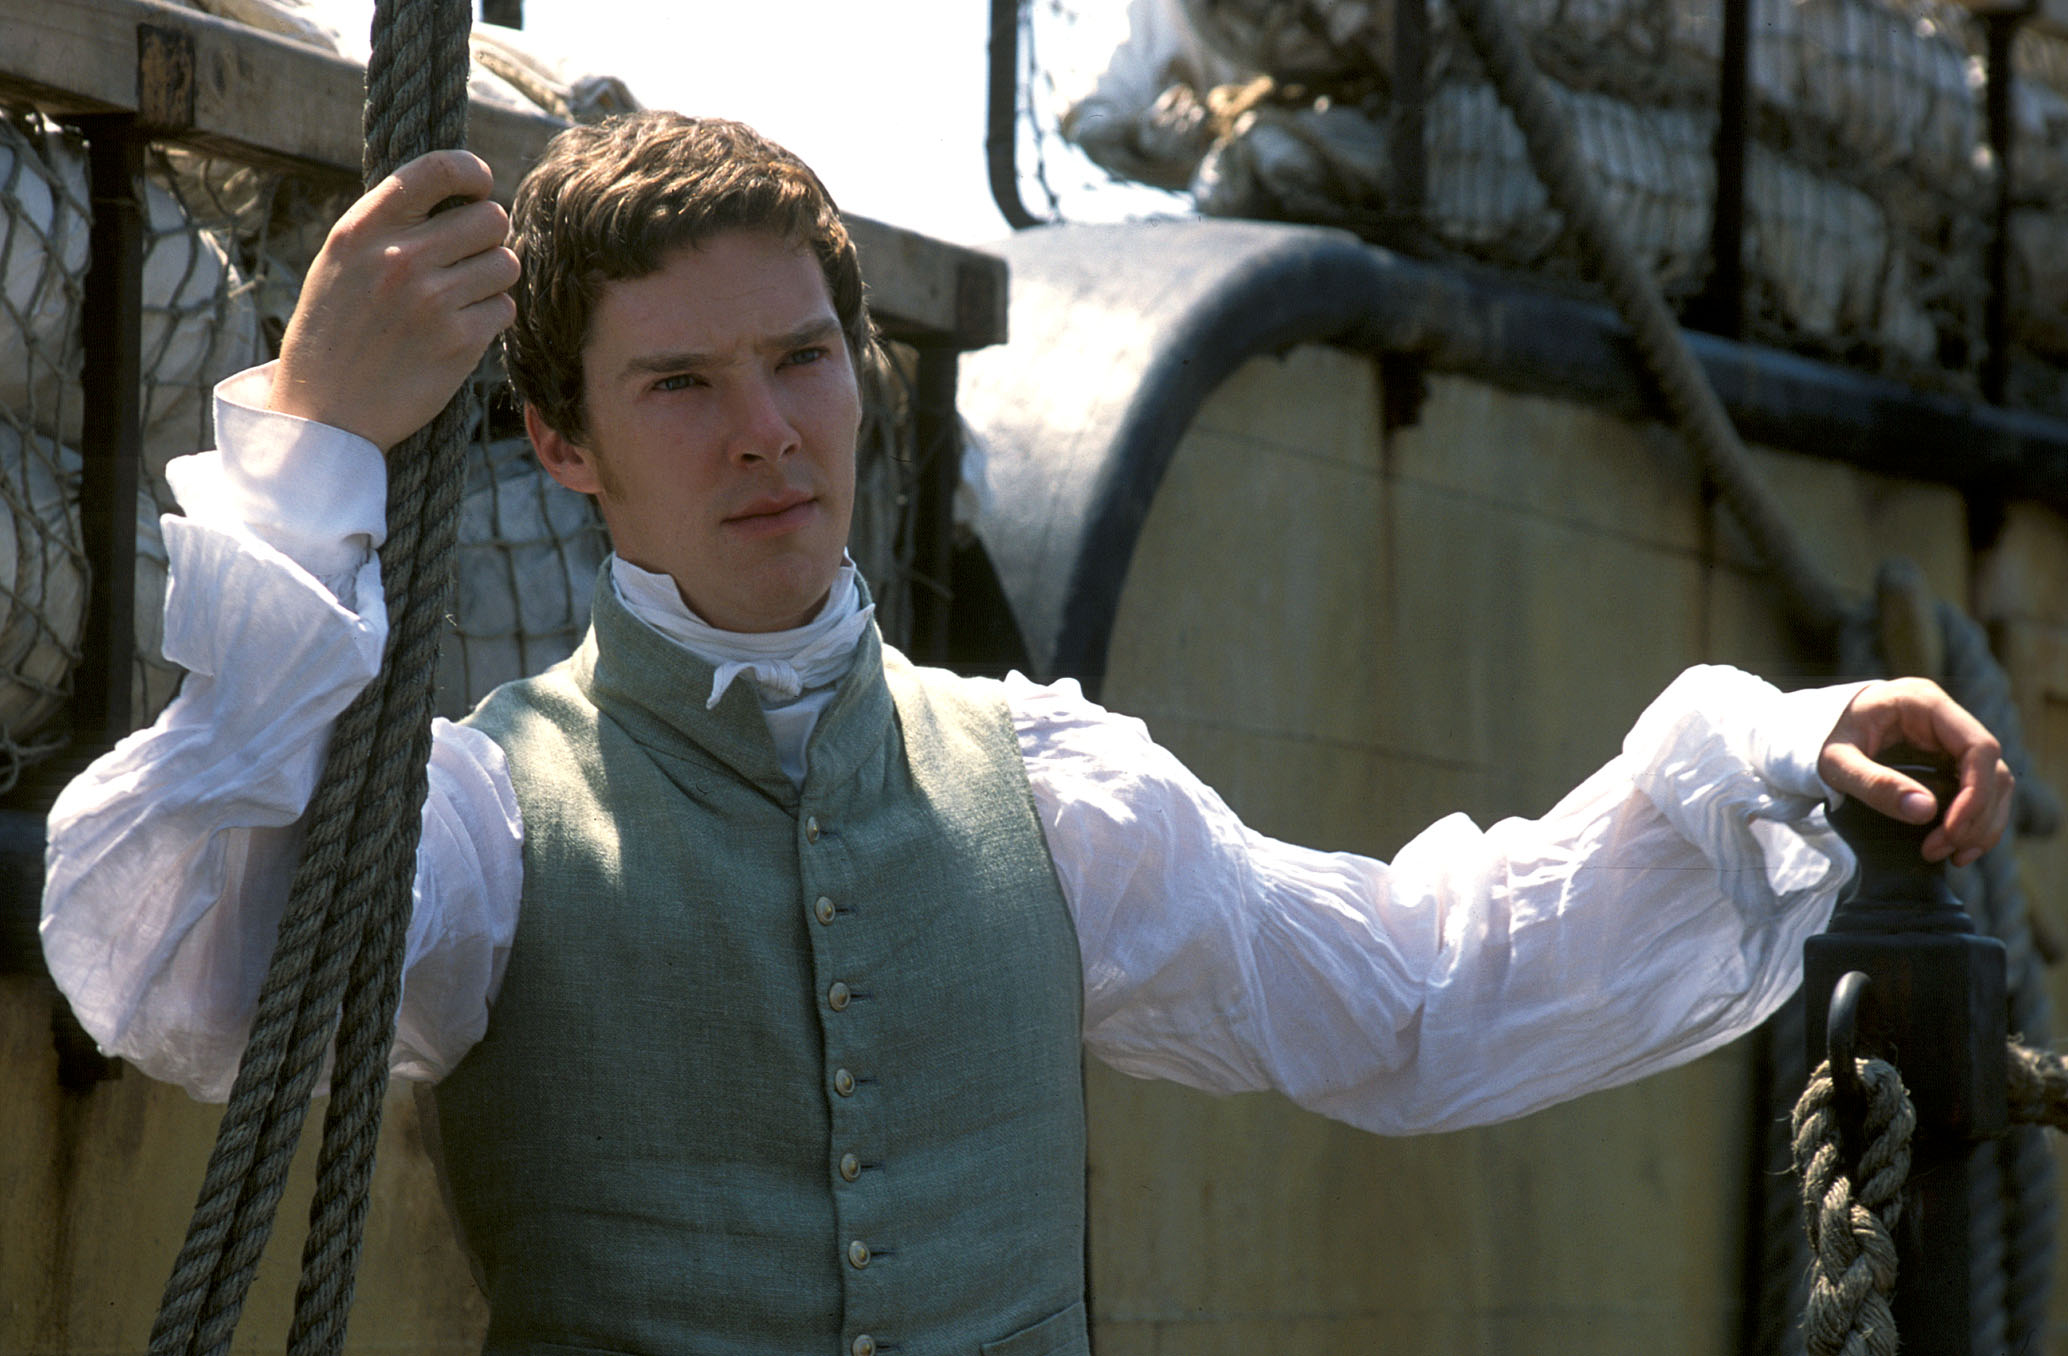 Masterpiece Theater: To the Ends of the Earth New PBS miniseries premiering Sunday. Benedict Cumberbatch as Edmund Talbot